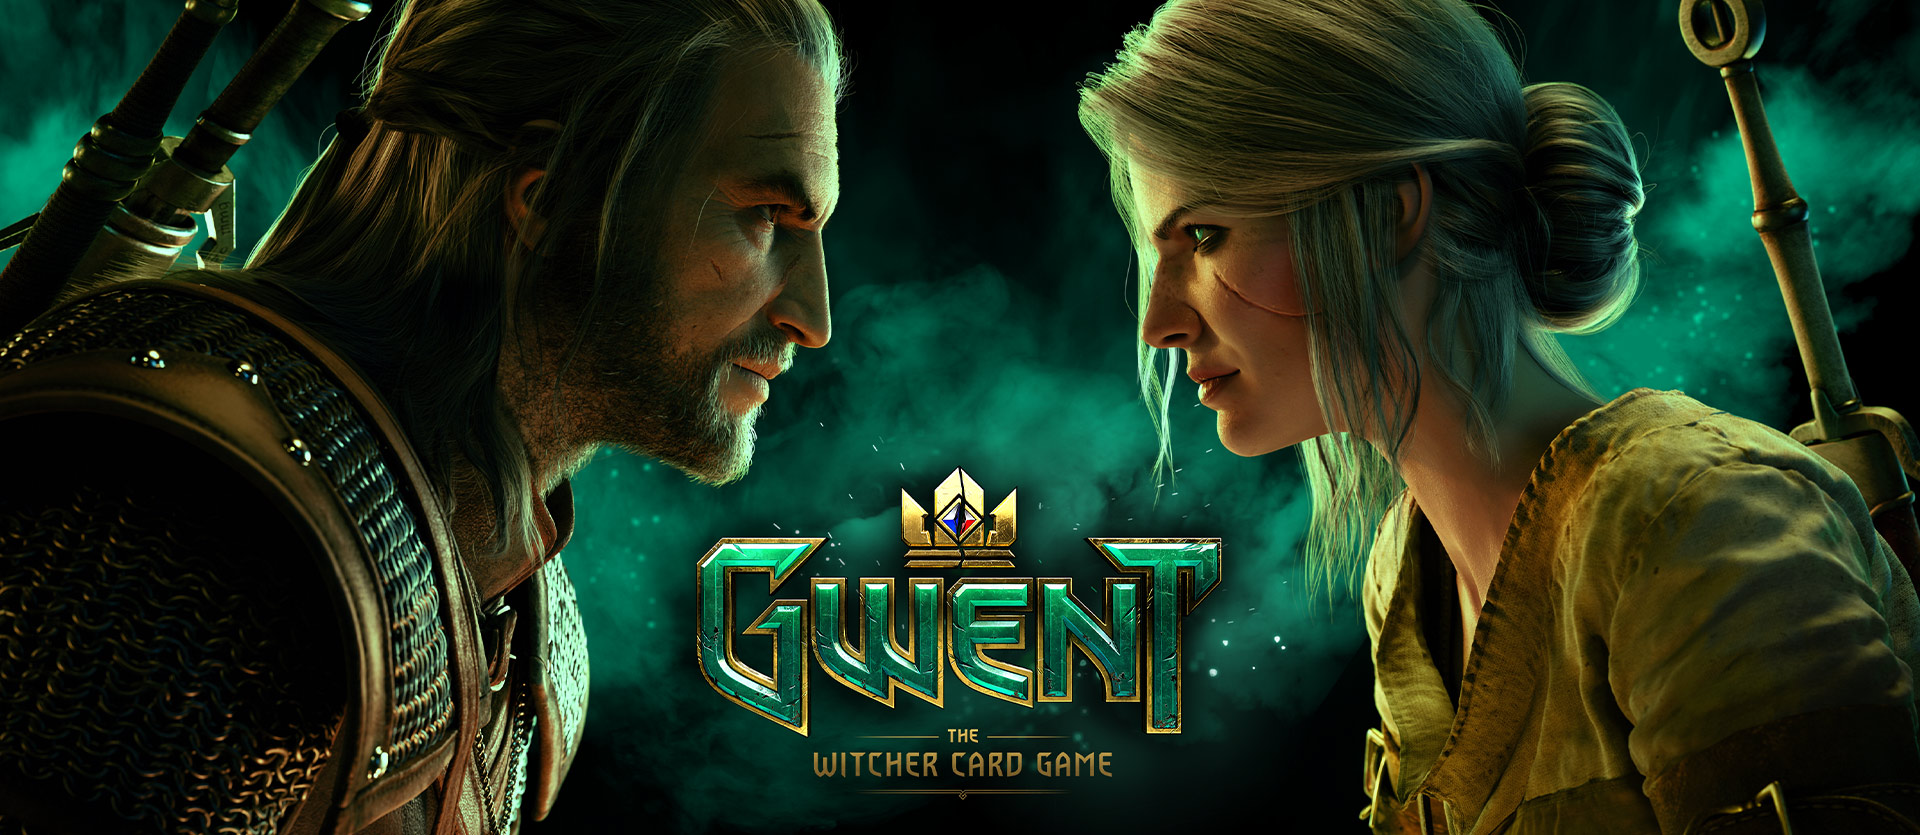 Gwent the Witcher Card Game, vista en perfil de Geralt y Ciri mientras se enfrentan